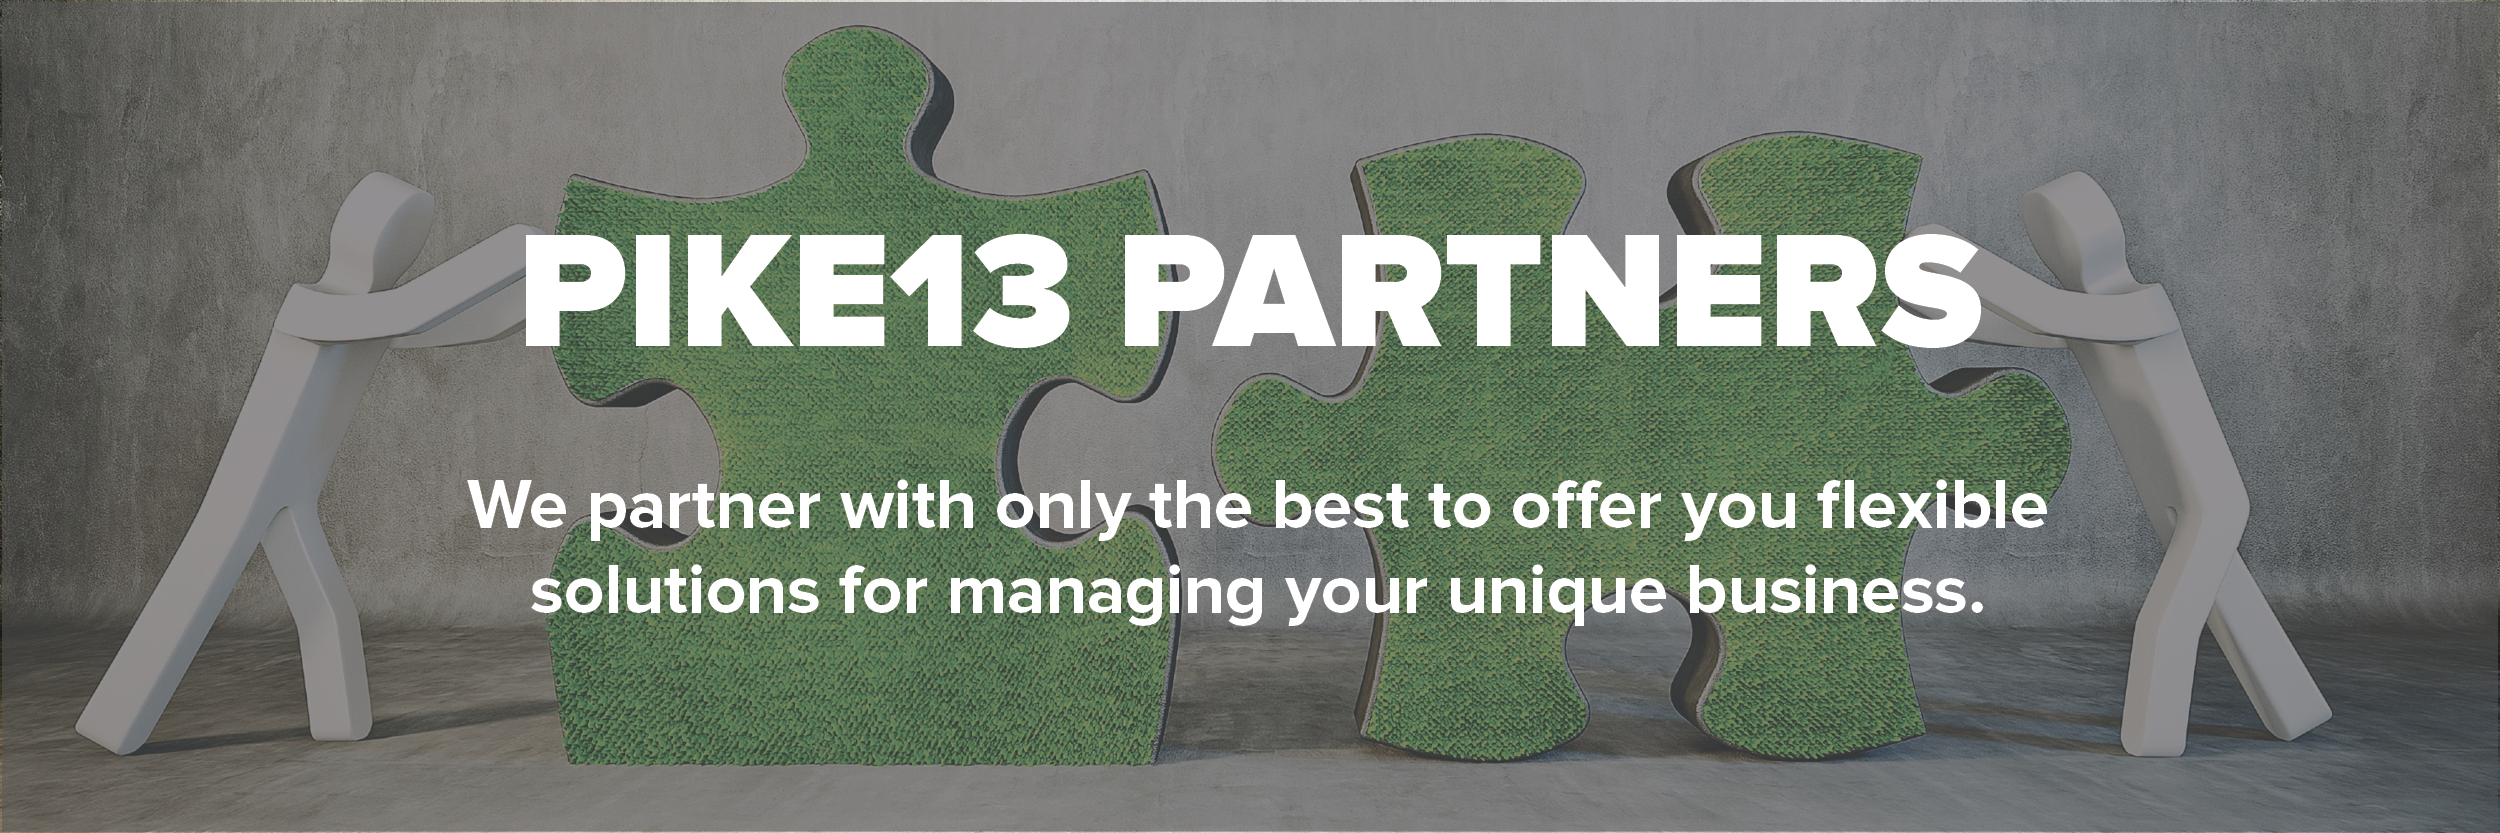 partners-email-banner